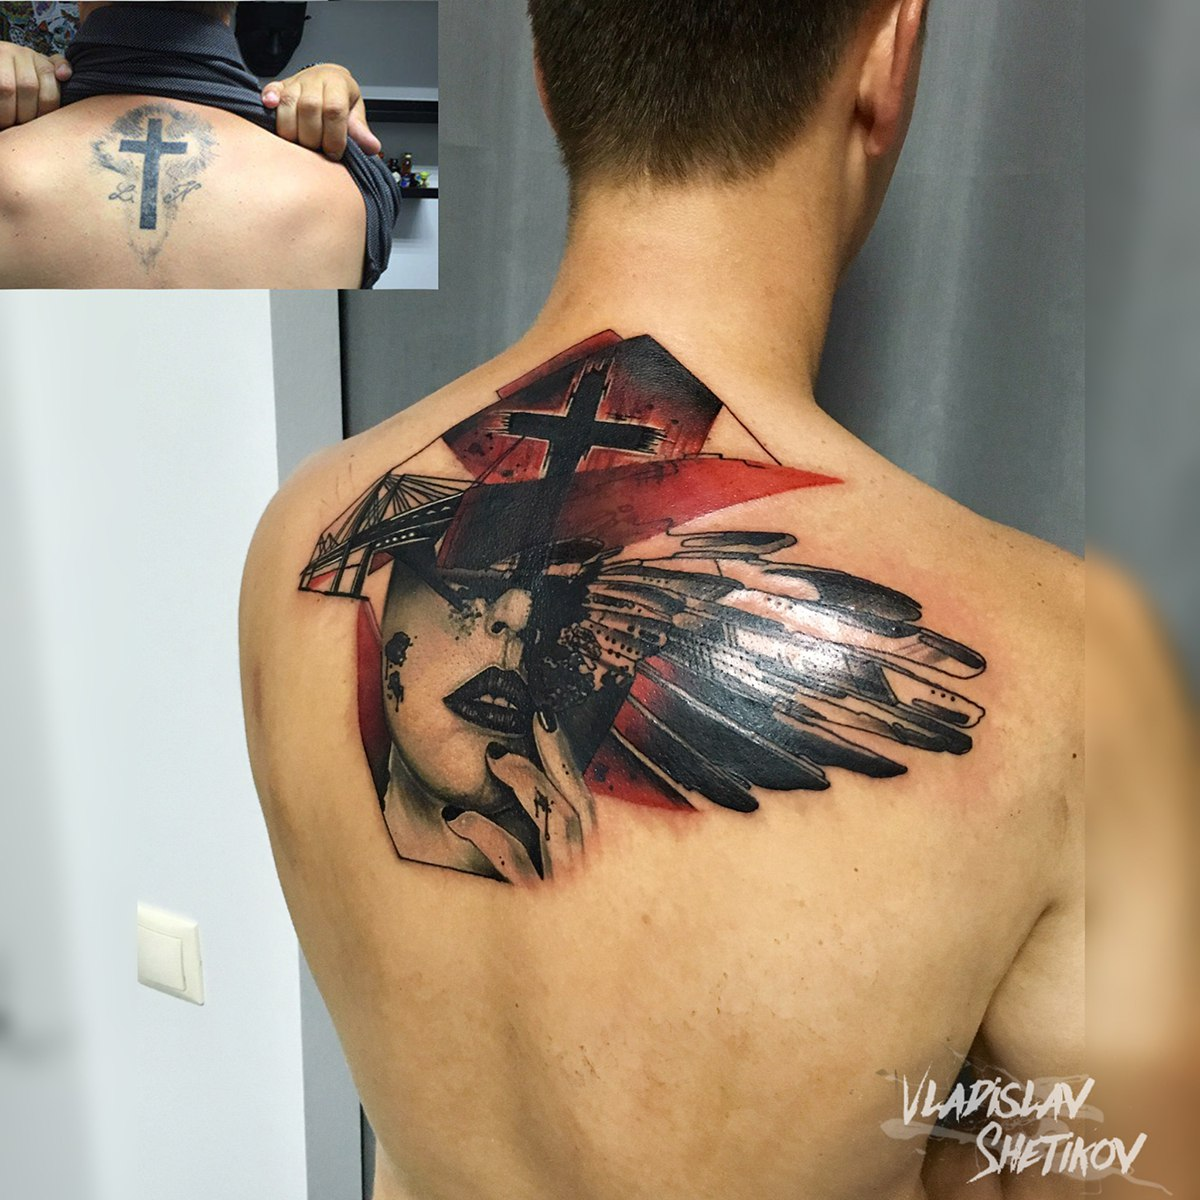 Trash polka style tattoo on upper back